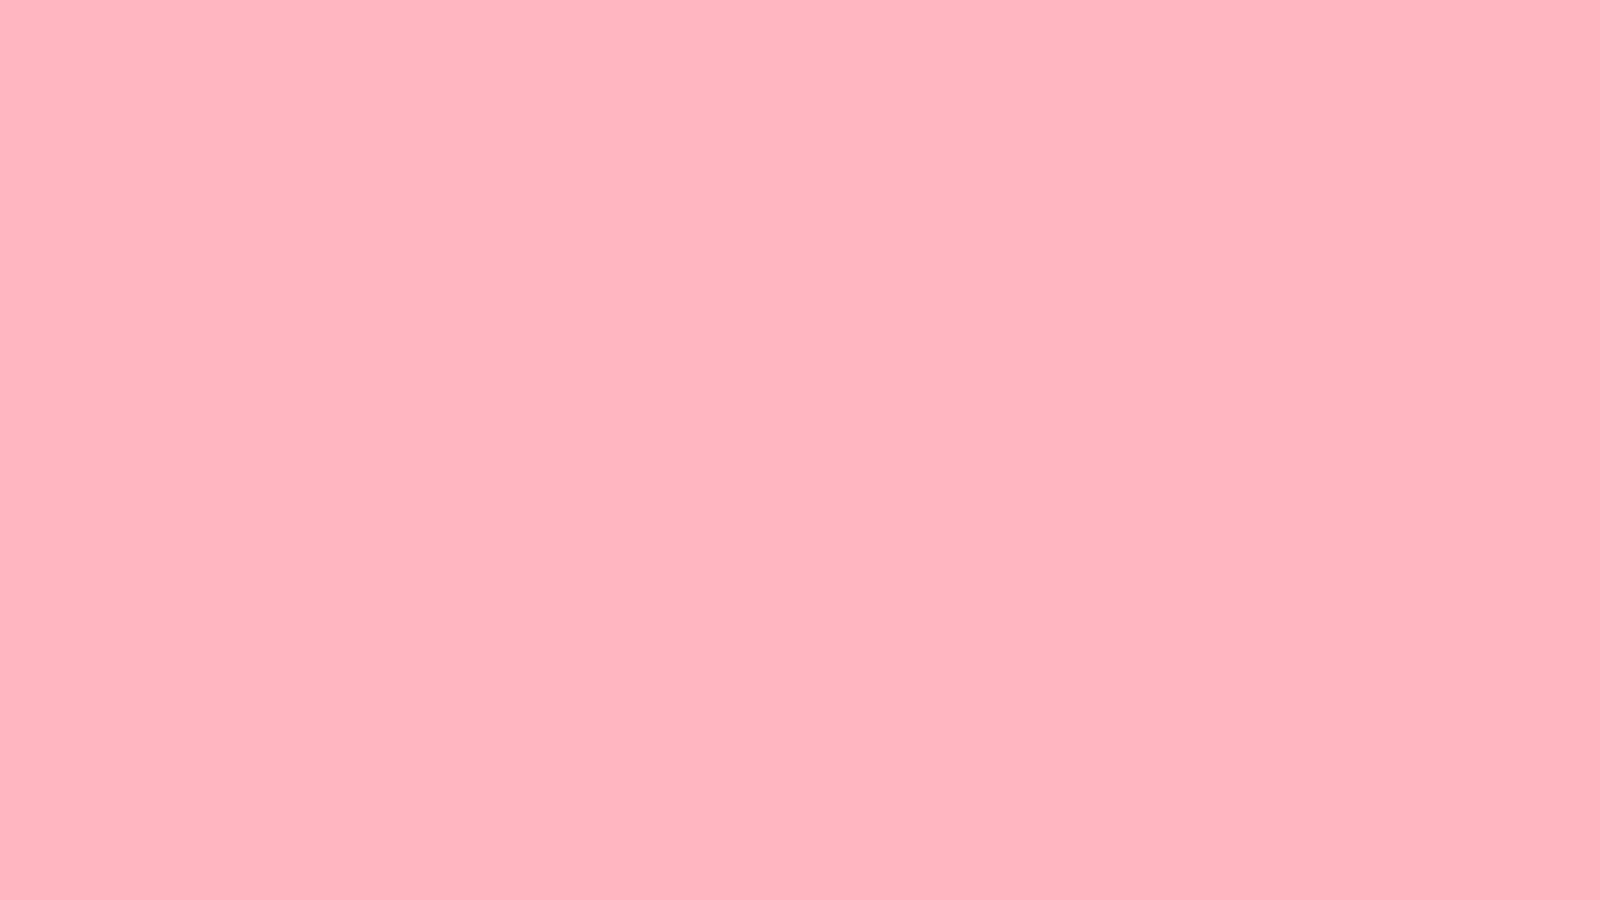 Pink solid color background view and download the below background 1600x900